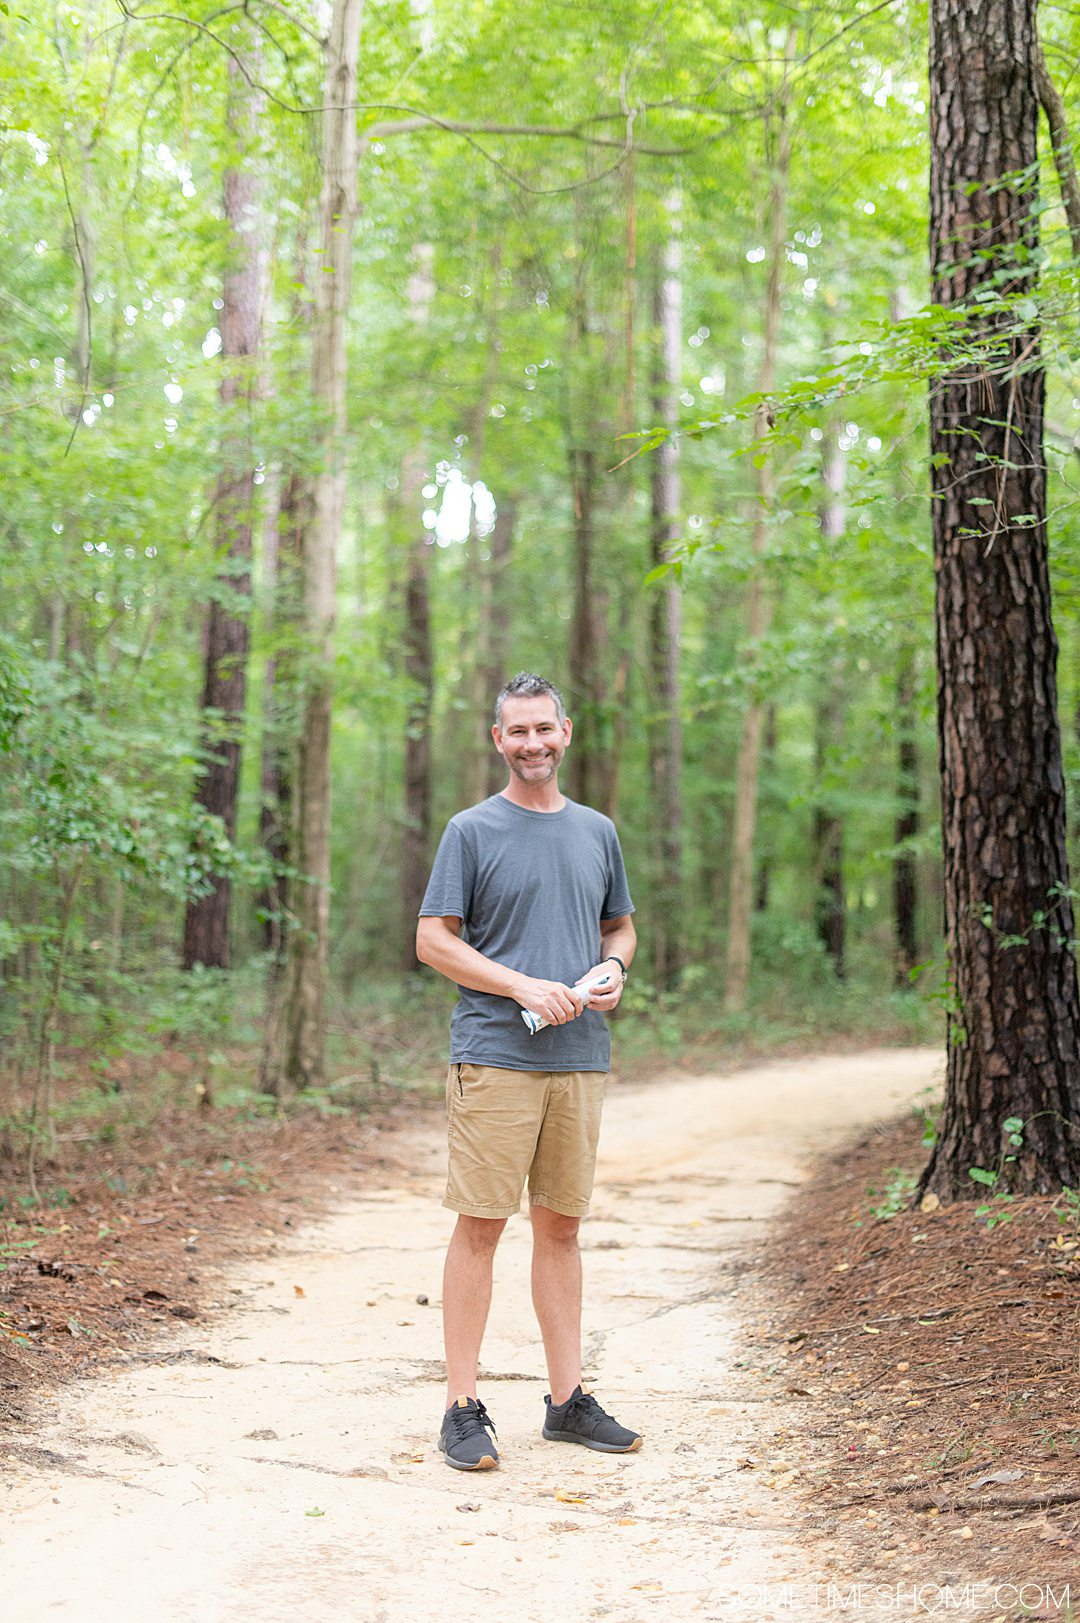 A man on a dirt walkway surrounded by tall trees at Cape Fear Botanical Gardens in Fayetteville, NC.